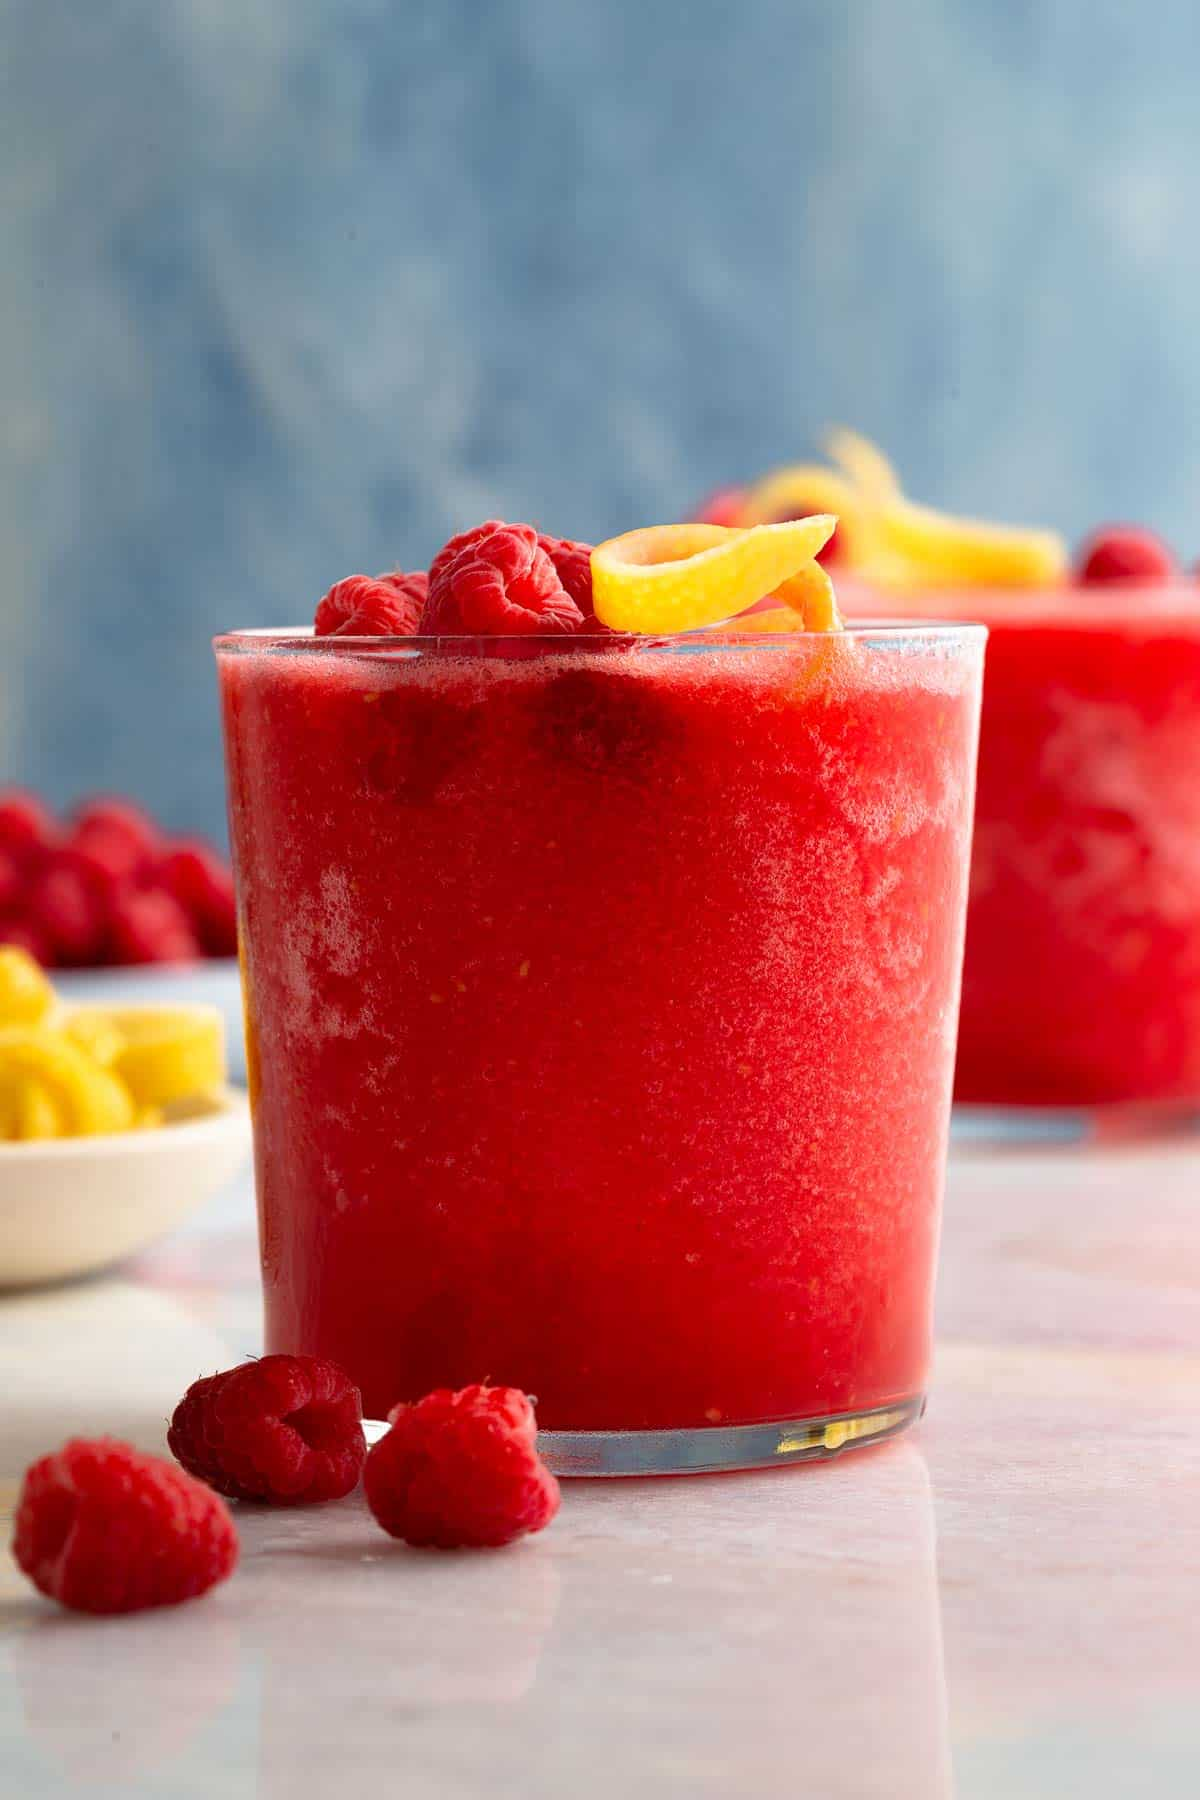 closeup on a red slushy cocktail in a glass garnished with raspberries and lemon peel